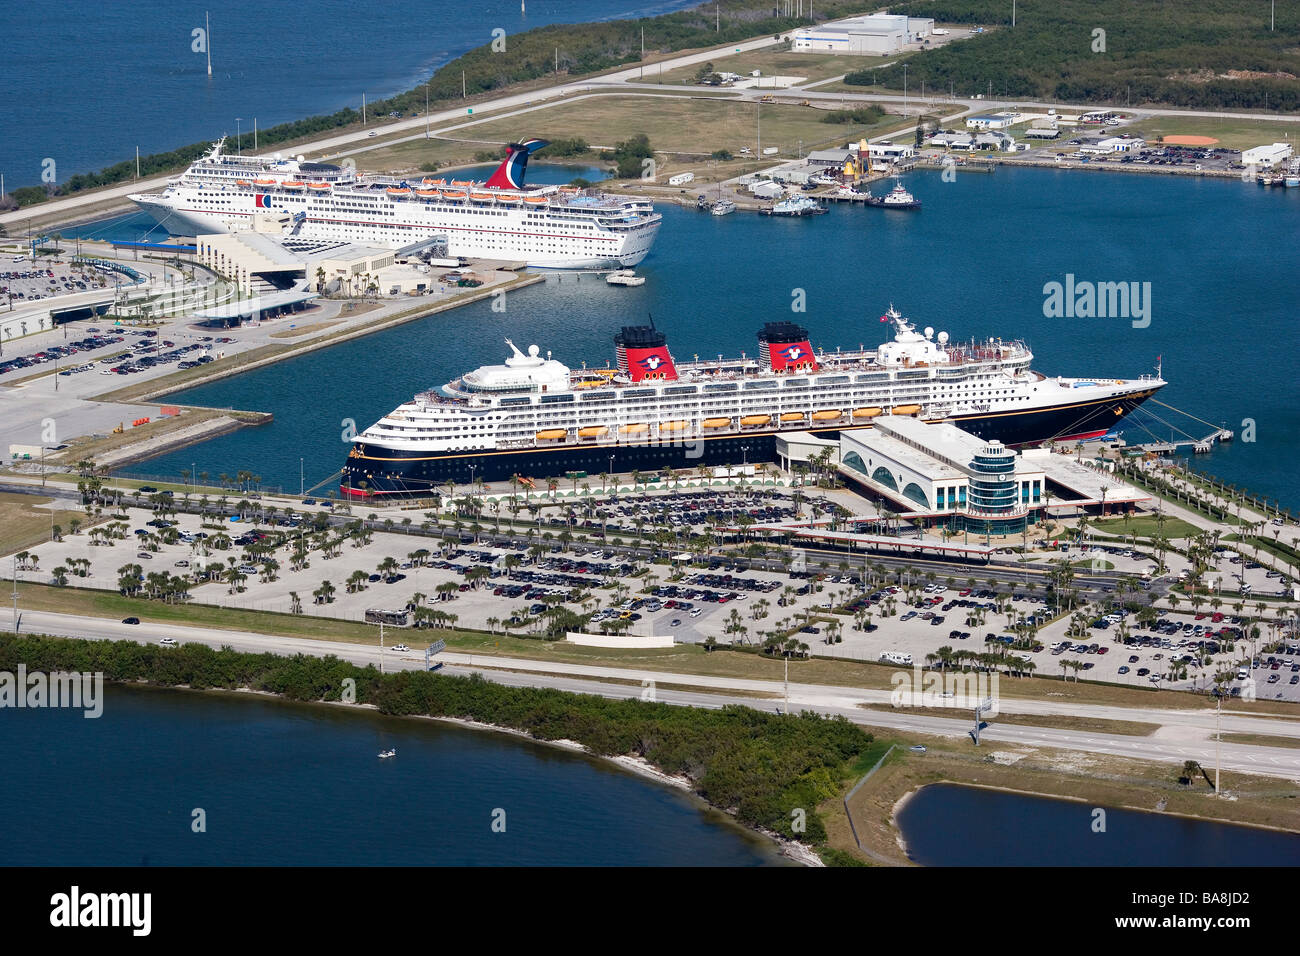 port canaveral men The city of cape canaveral lies just south of the port canaveral district mosquito lagoon, the cape canaveral became the test site for missiles when the.